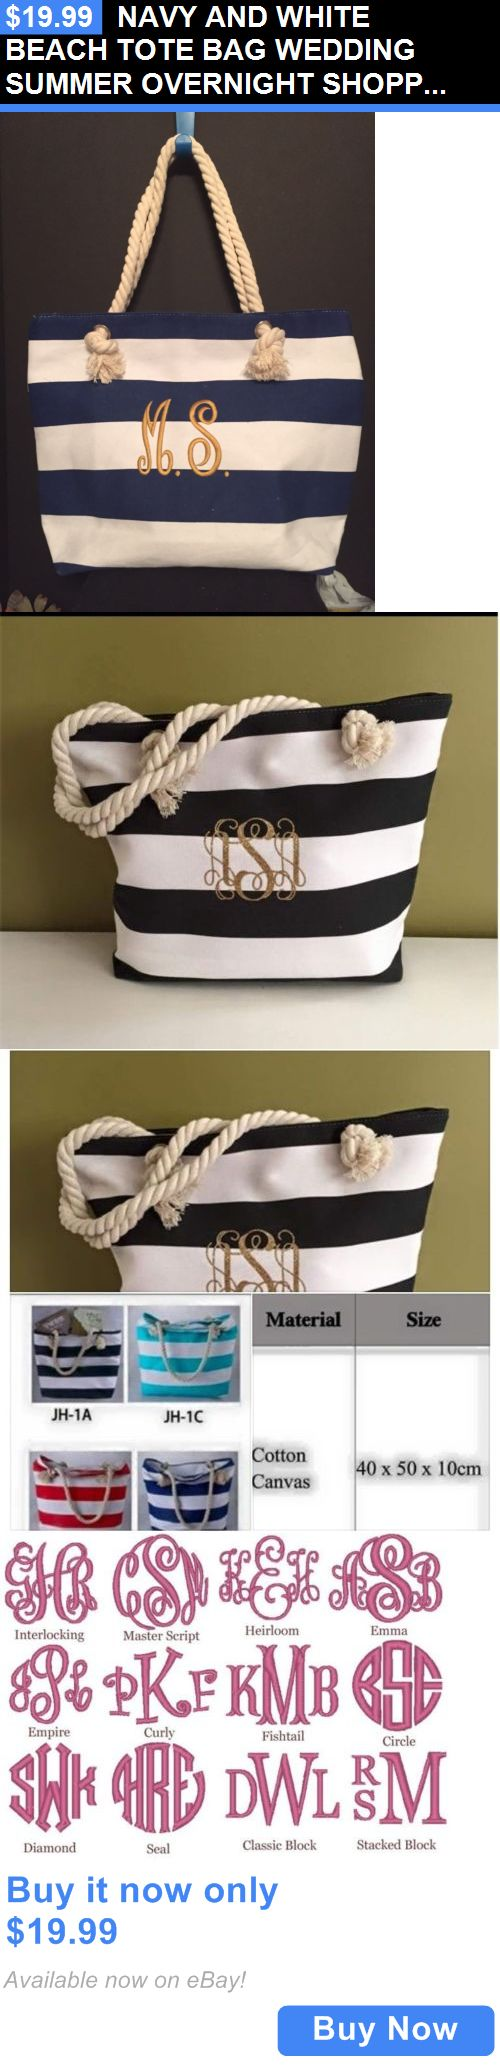 Bridal Handbags And Bags: Navy And White Beach Tote Bag Wedding Summer Overnight Shopping BUY IT NOW ONLY: $19.99